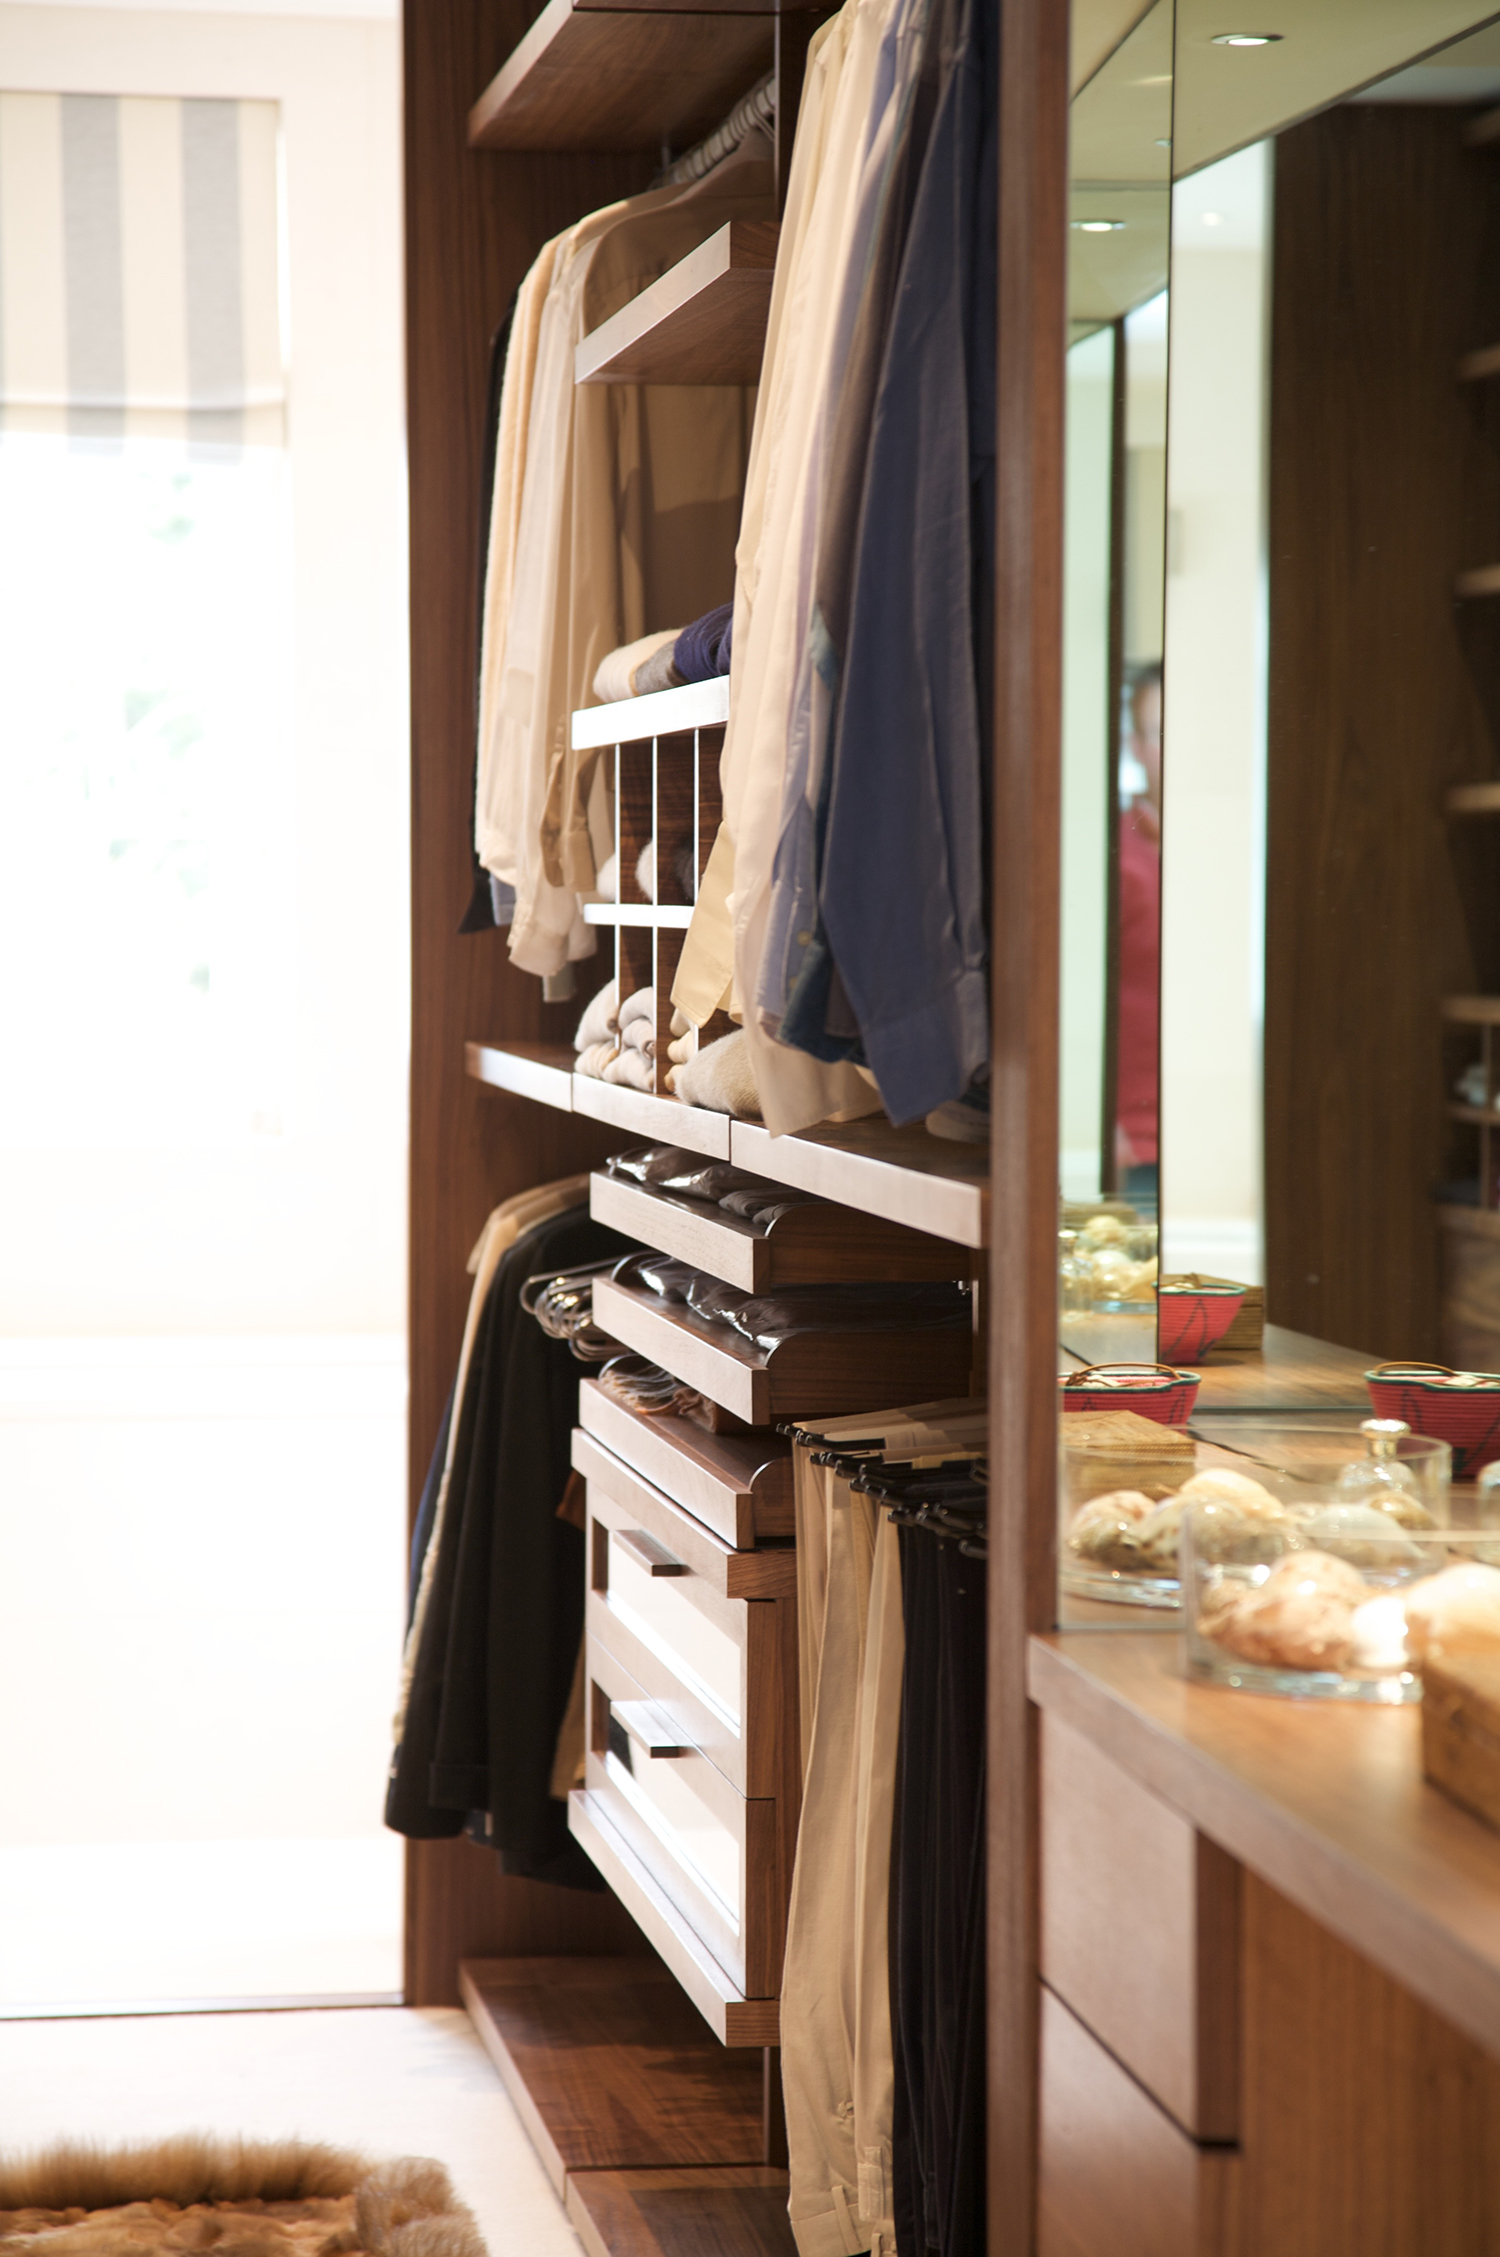 Bespoke Dressing Room - Bespoke Furniture Hampshire, UK